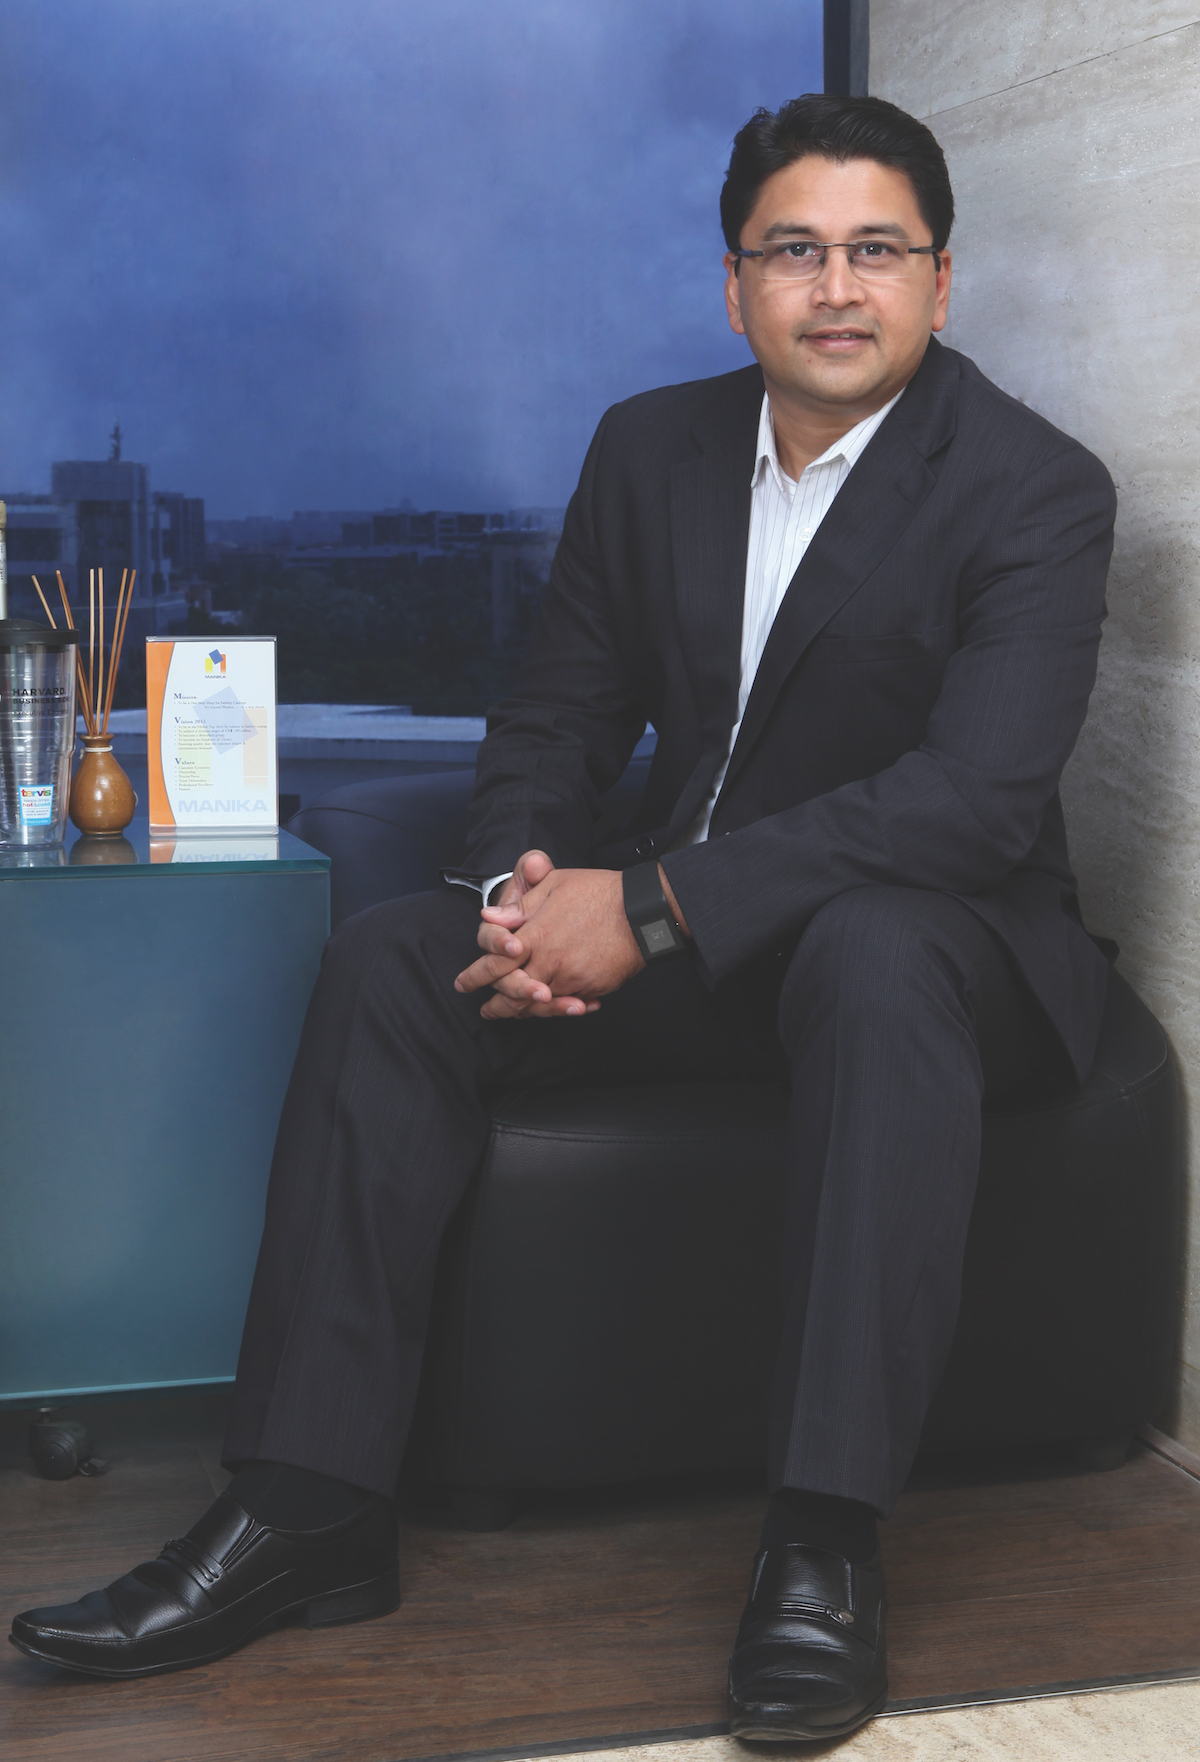 Munjal Kapadia, CEO & MD of Manika Moulds